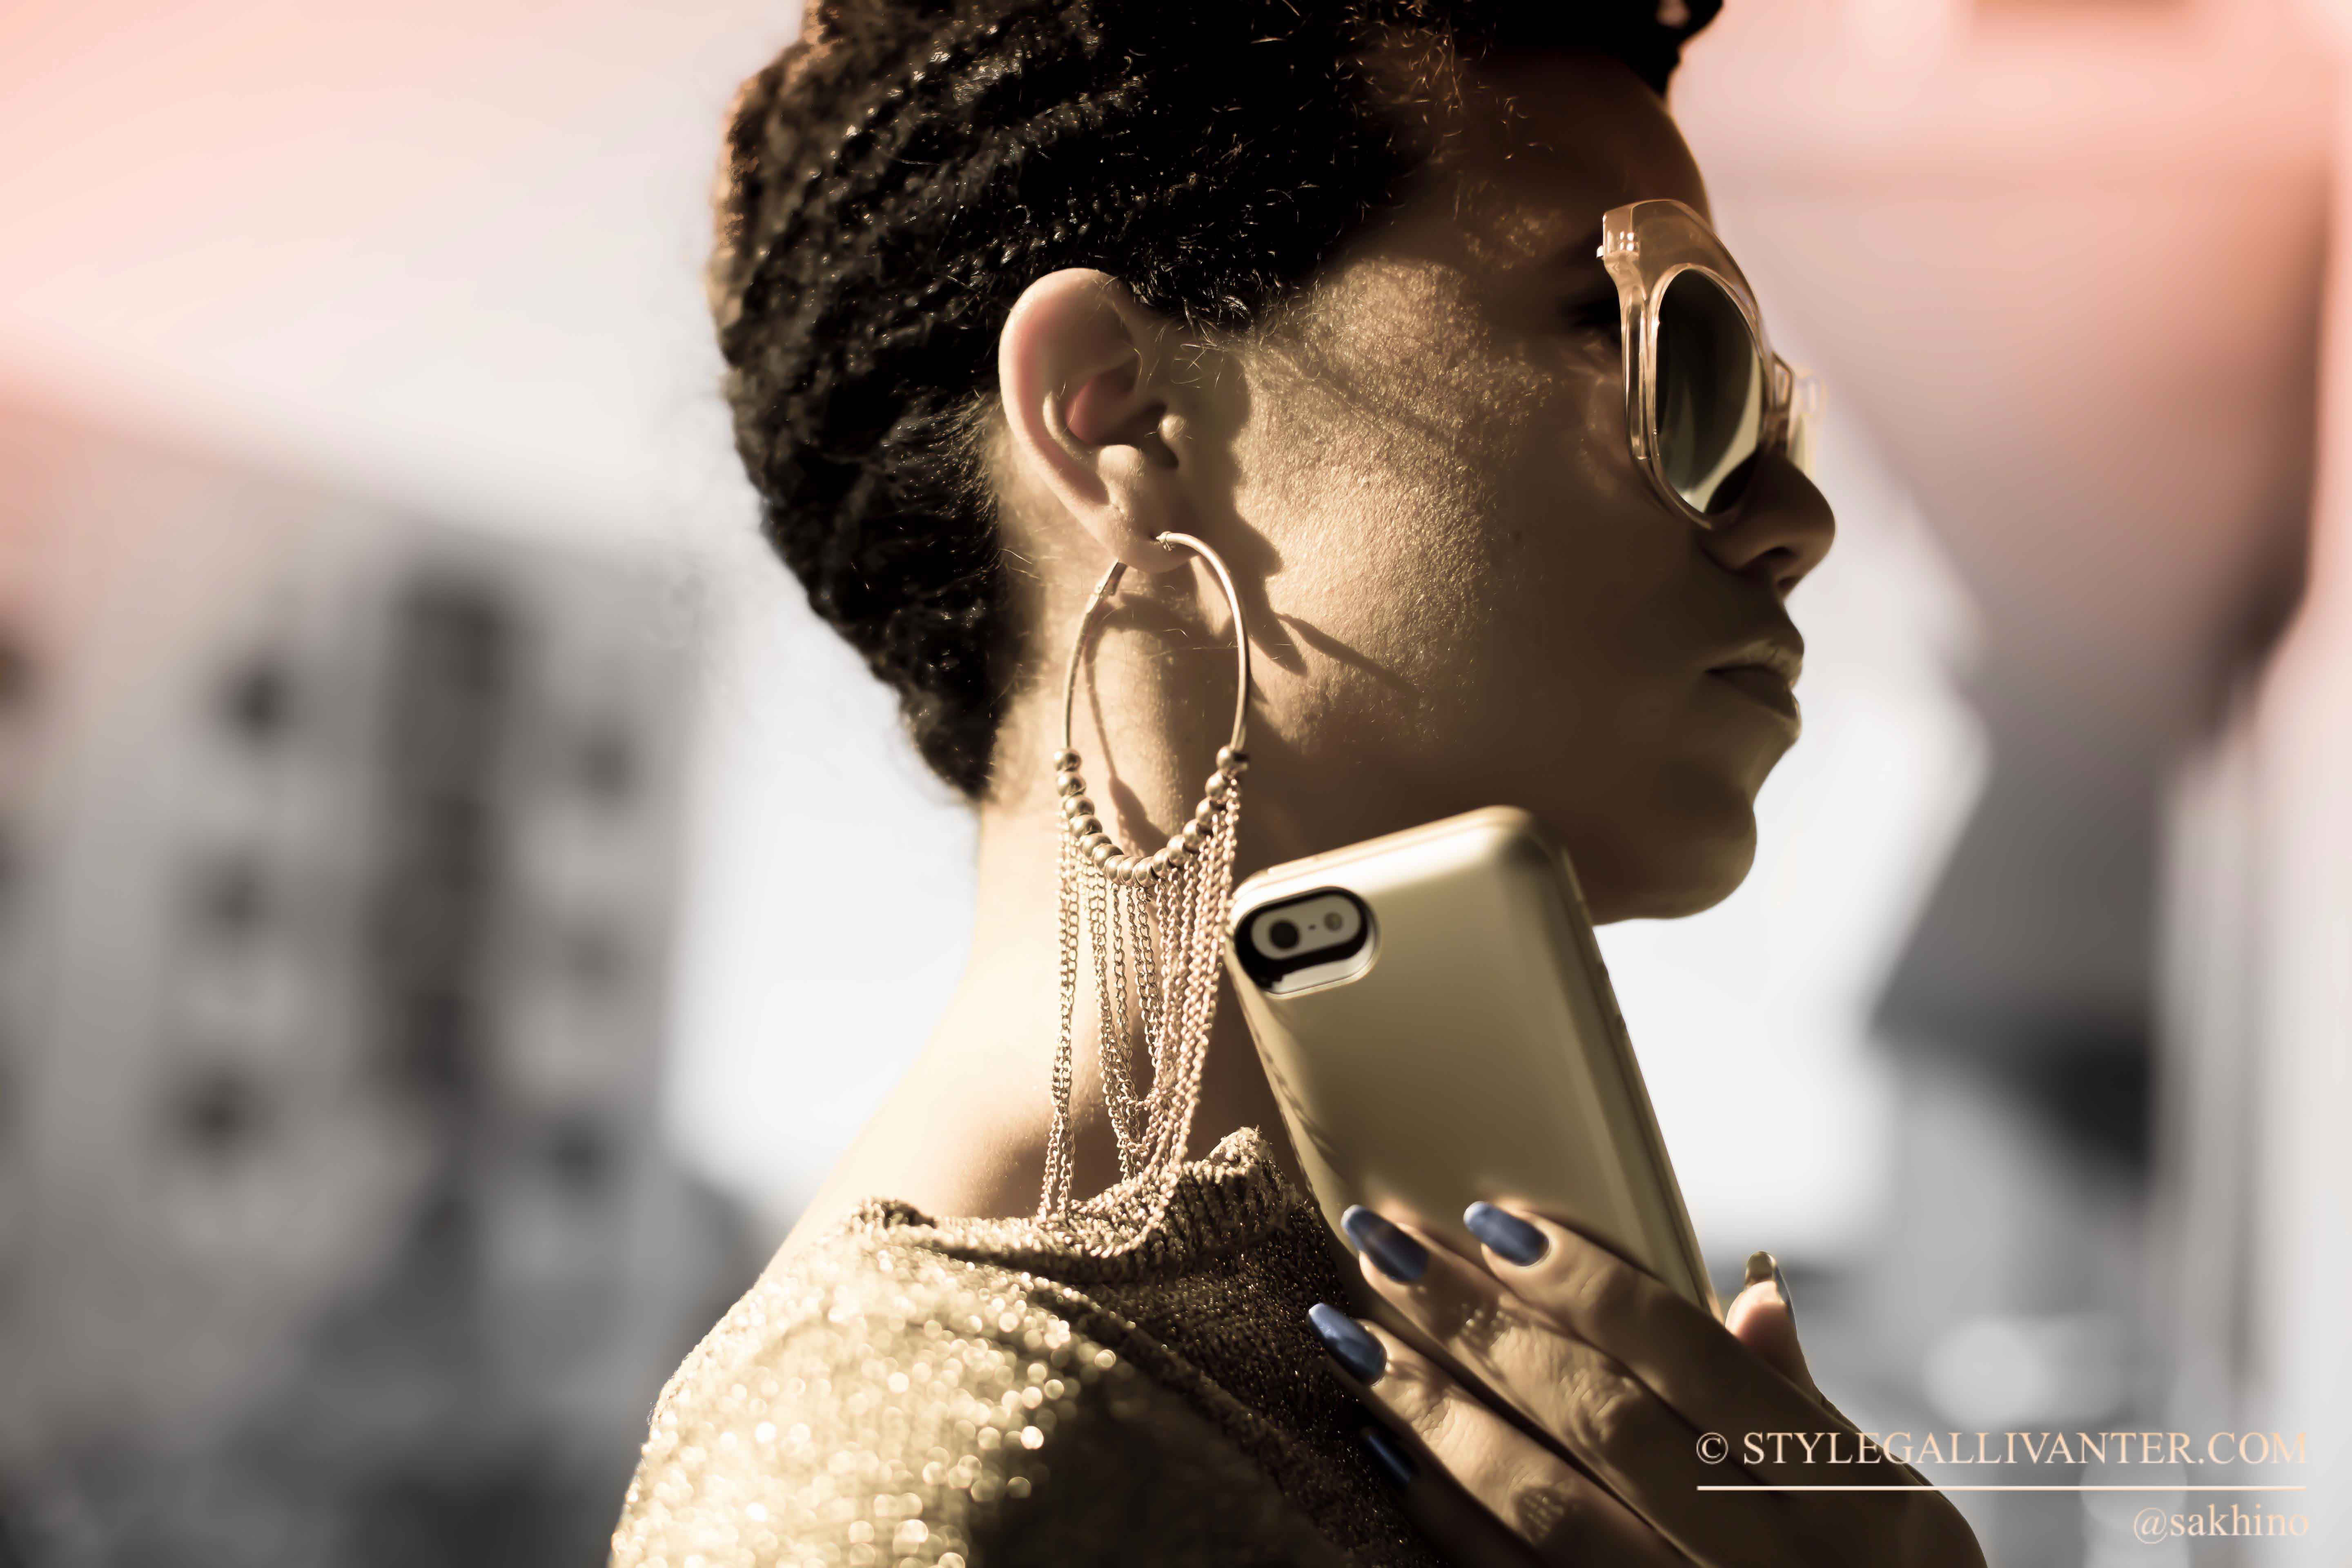 mophie-juice-pack-air_rechargeable-battery-cases_must-have-tech-accessories-2015_TOP-AFRICAN-BLOGGERS_BEST-FASHION-BLOGGERS-AFRICA_TOP-MUMMY-BLOGGERS-AUSTRALIA_BESPREGNANCY-FASHION-EDITORIALS_TOP-NATURAL-HAIR-MODELS-AUSTRALIA-33